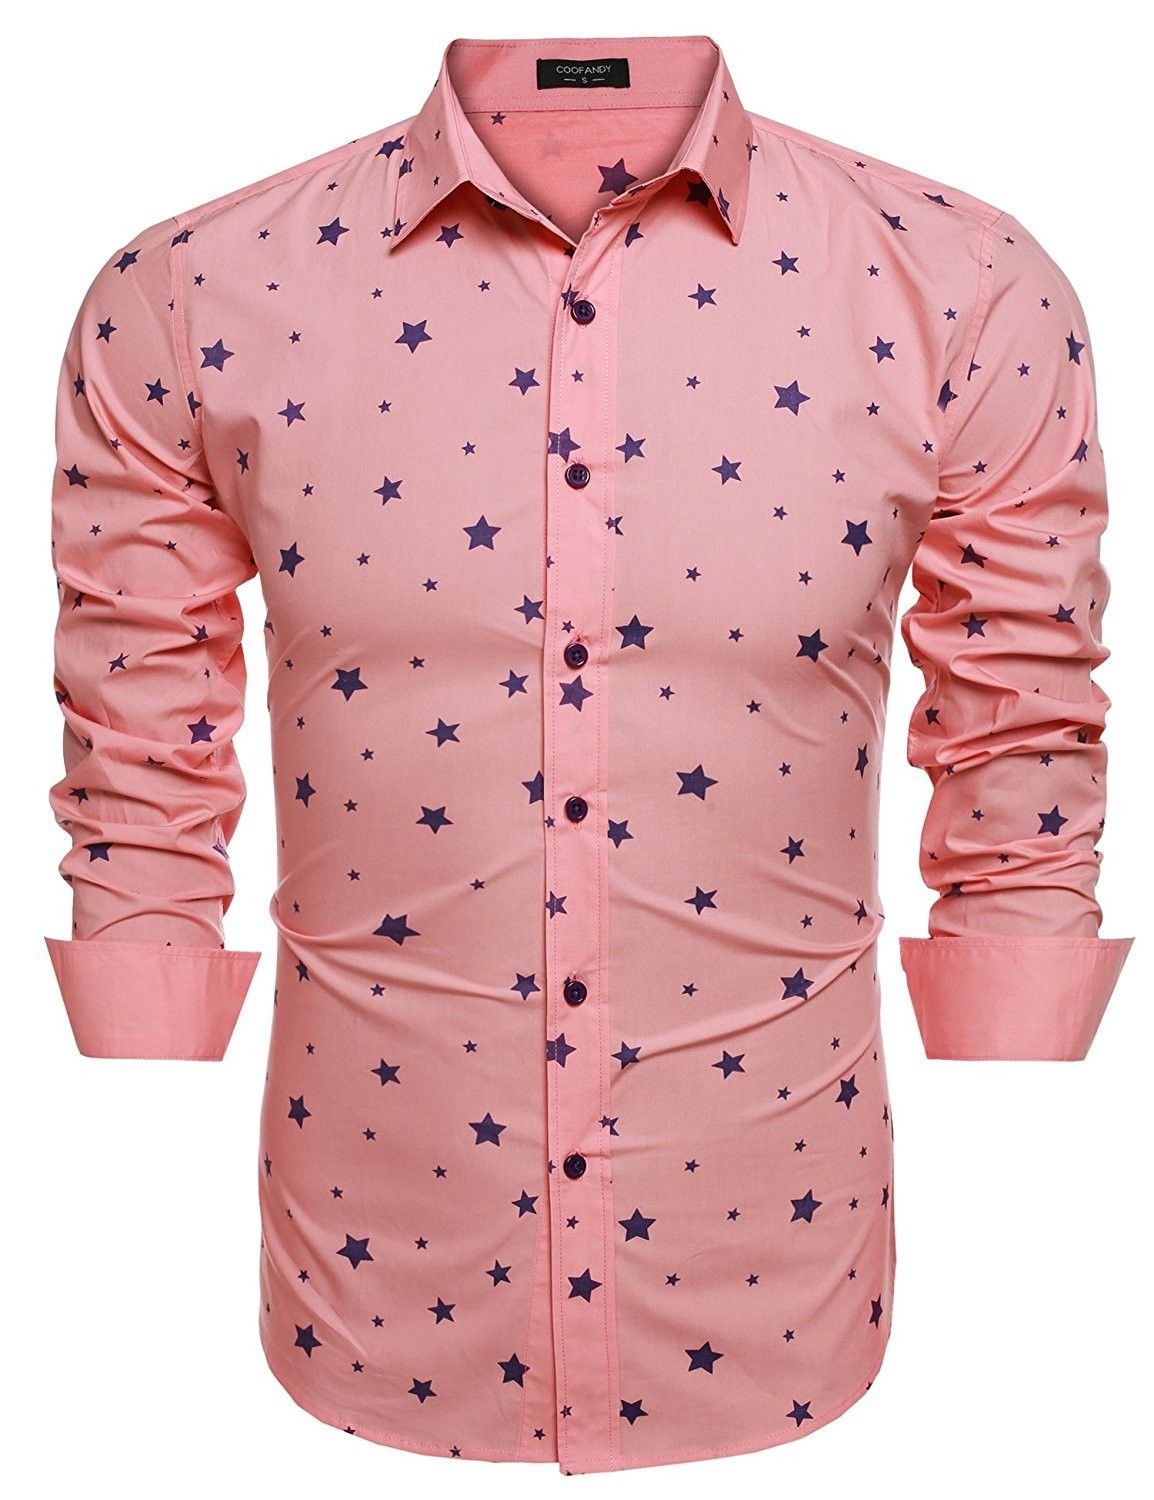 76cb8144 Mens Fashion Slim Fit Turn Down Collar Long Sleeve Star Print Casual Shirts  - Pink - C212GOK8DSR,Men's Clothing, Shirts, Casual Button-Down Shirts #men  ...